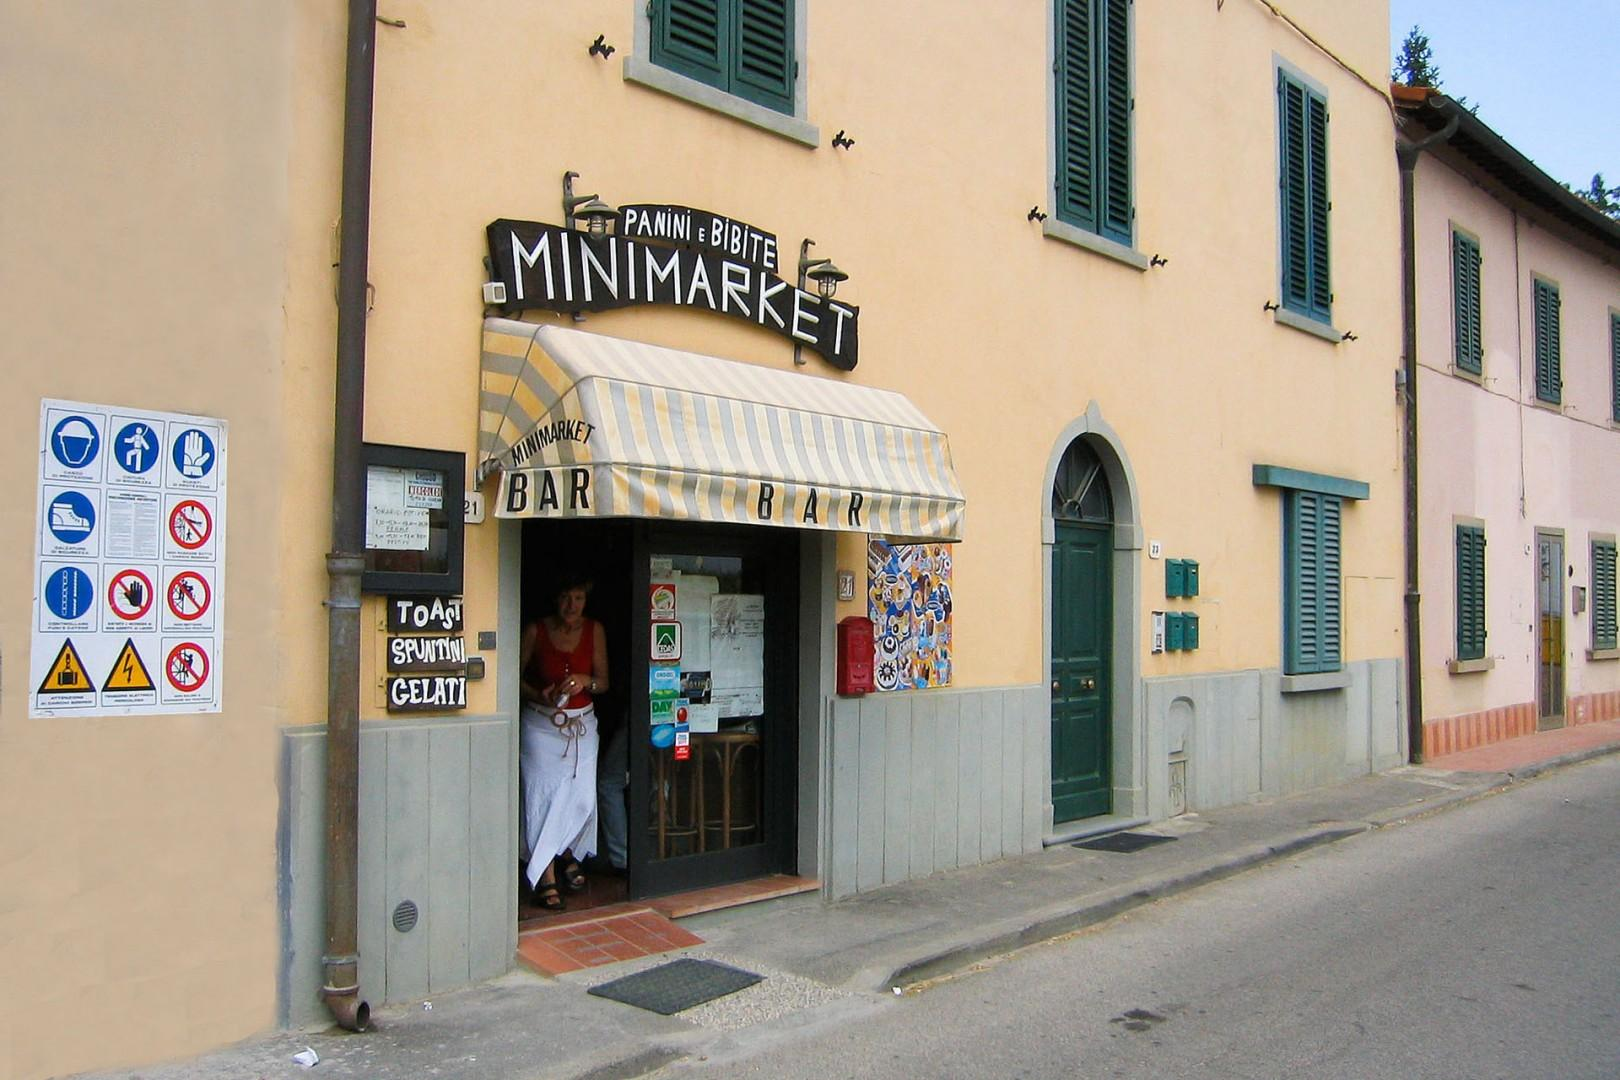 The little cafe in Romita has a few grocery items.